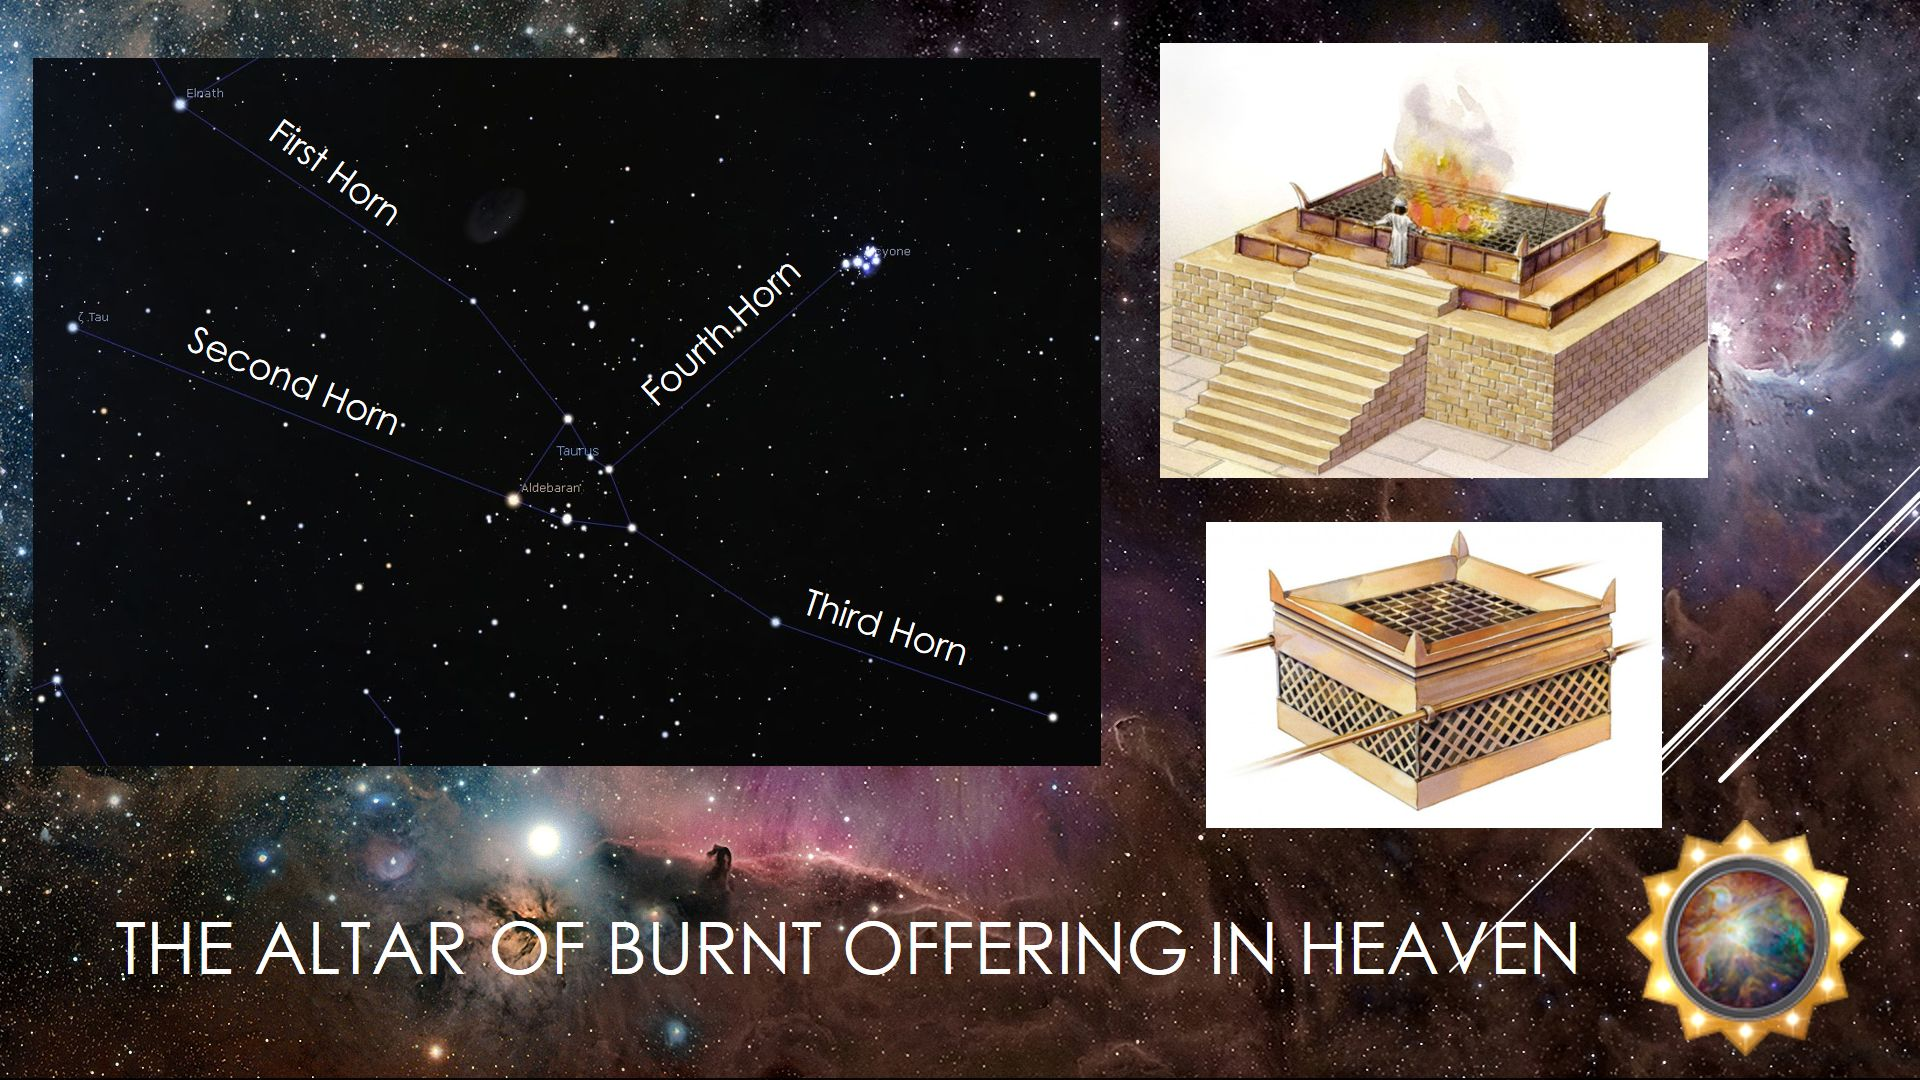 The altar of burnt sacrifice in the heavens